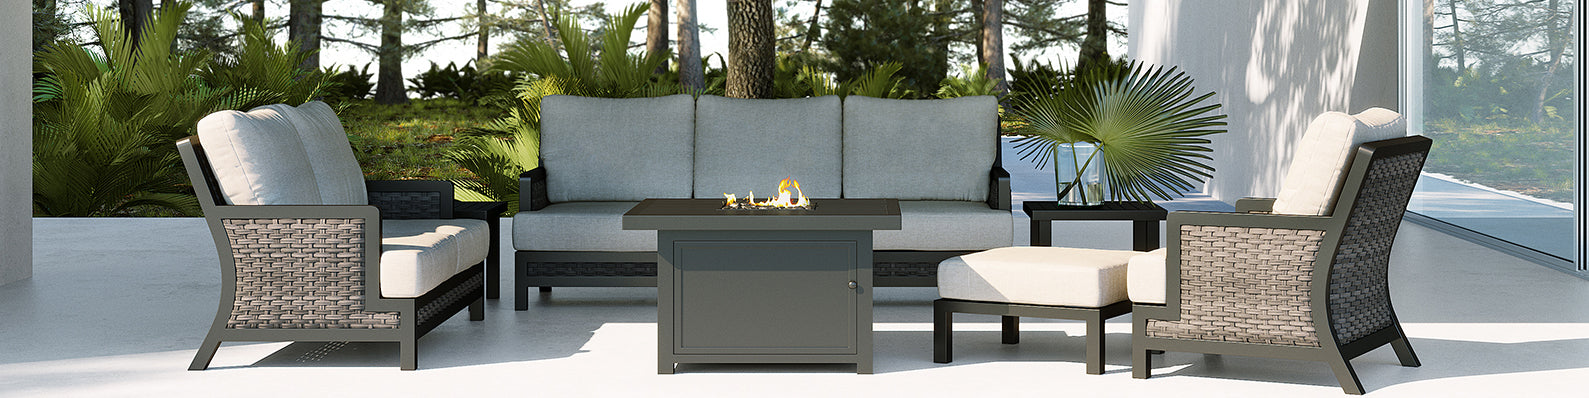 Outdoor Seating, Sofas & Sectionals